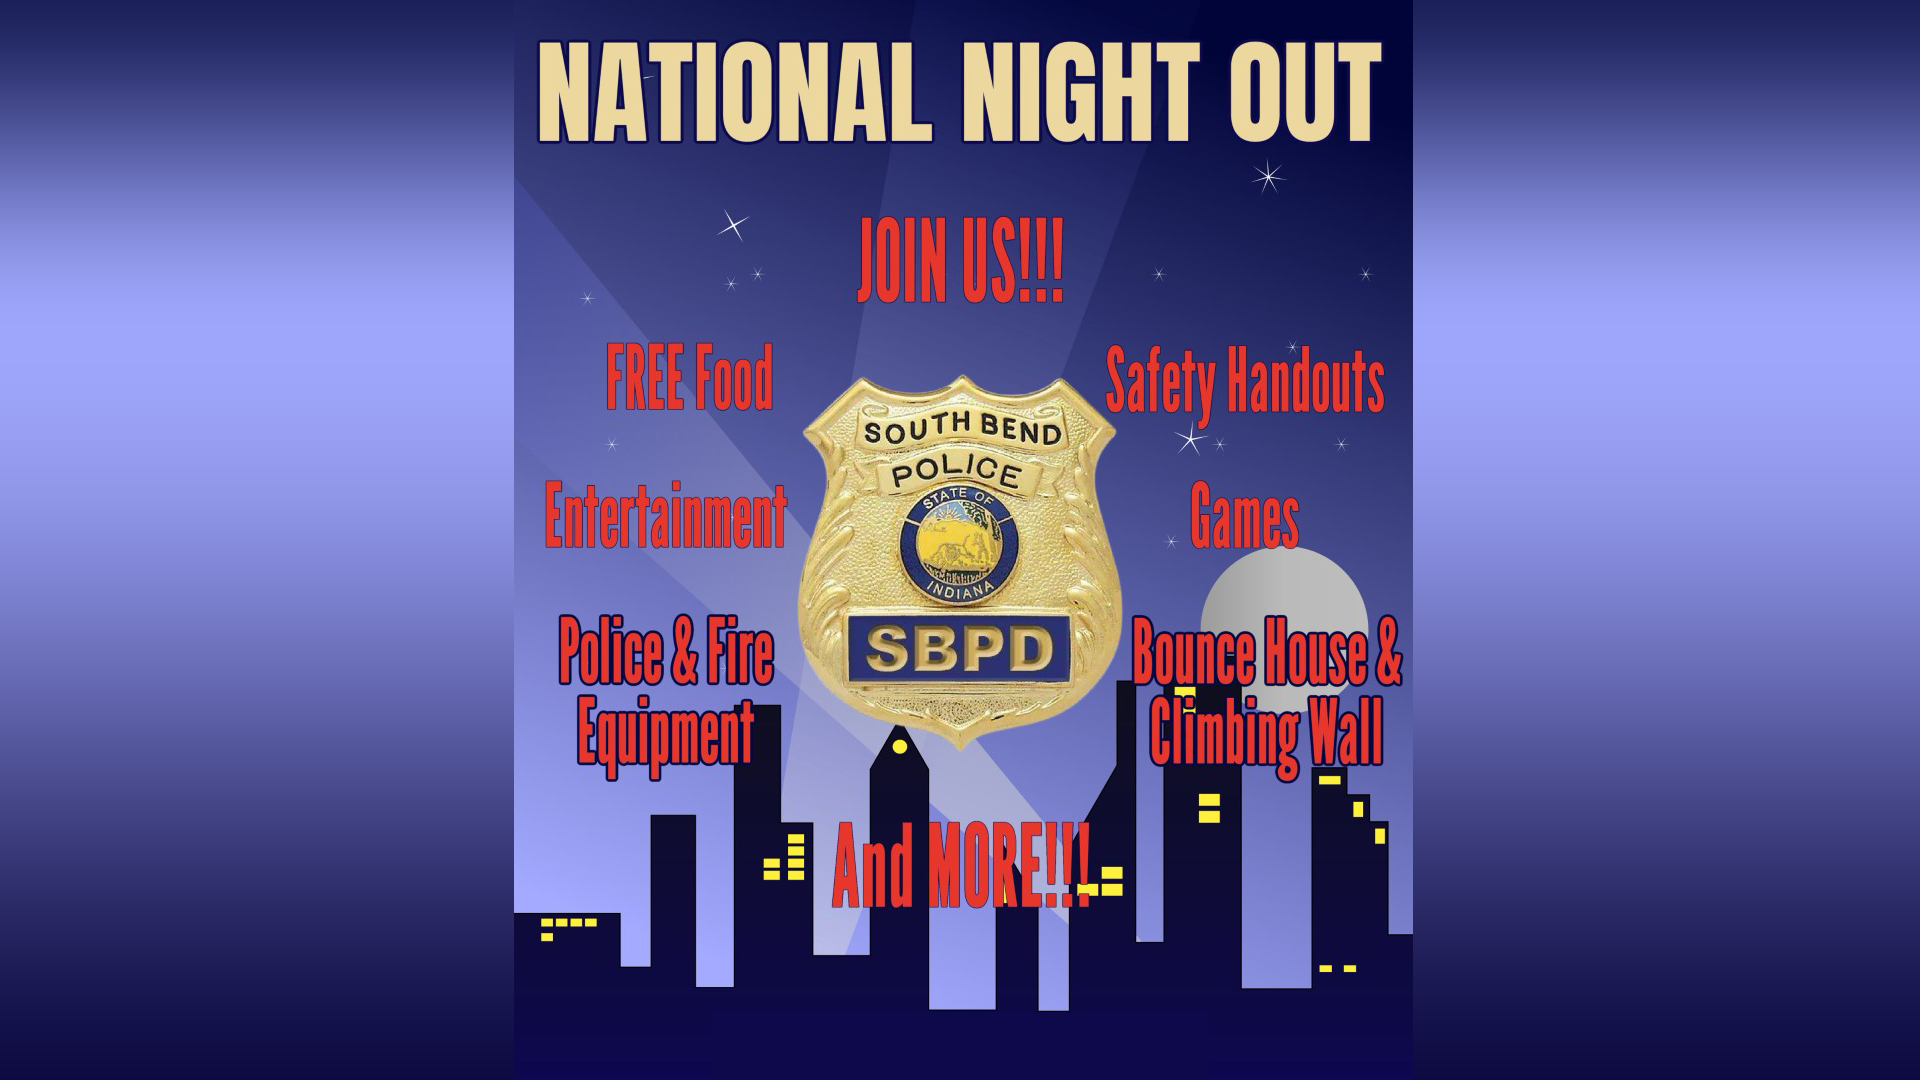 South Bend Police Department's National Night Out Event